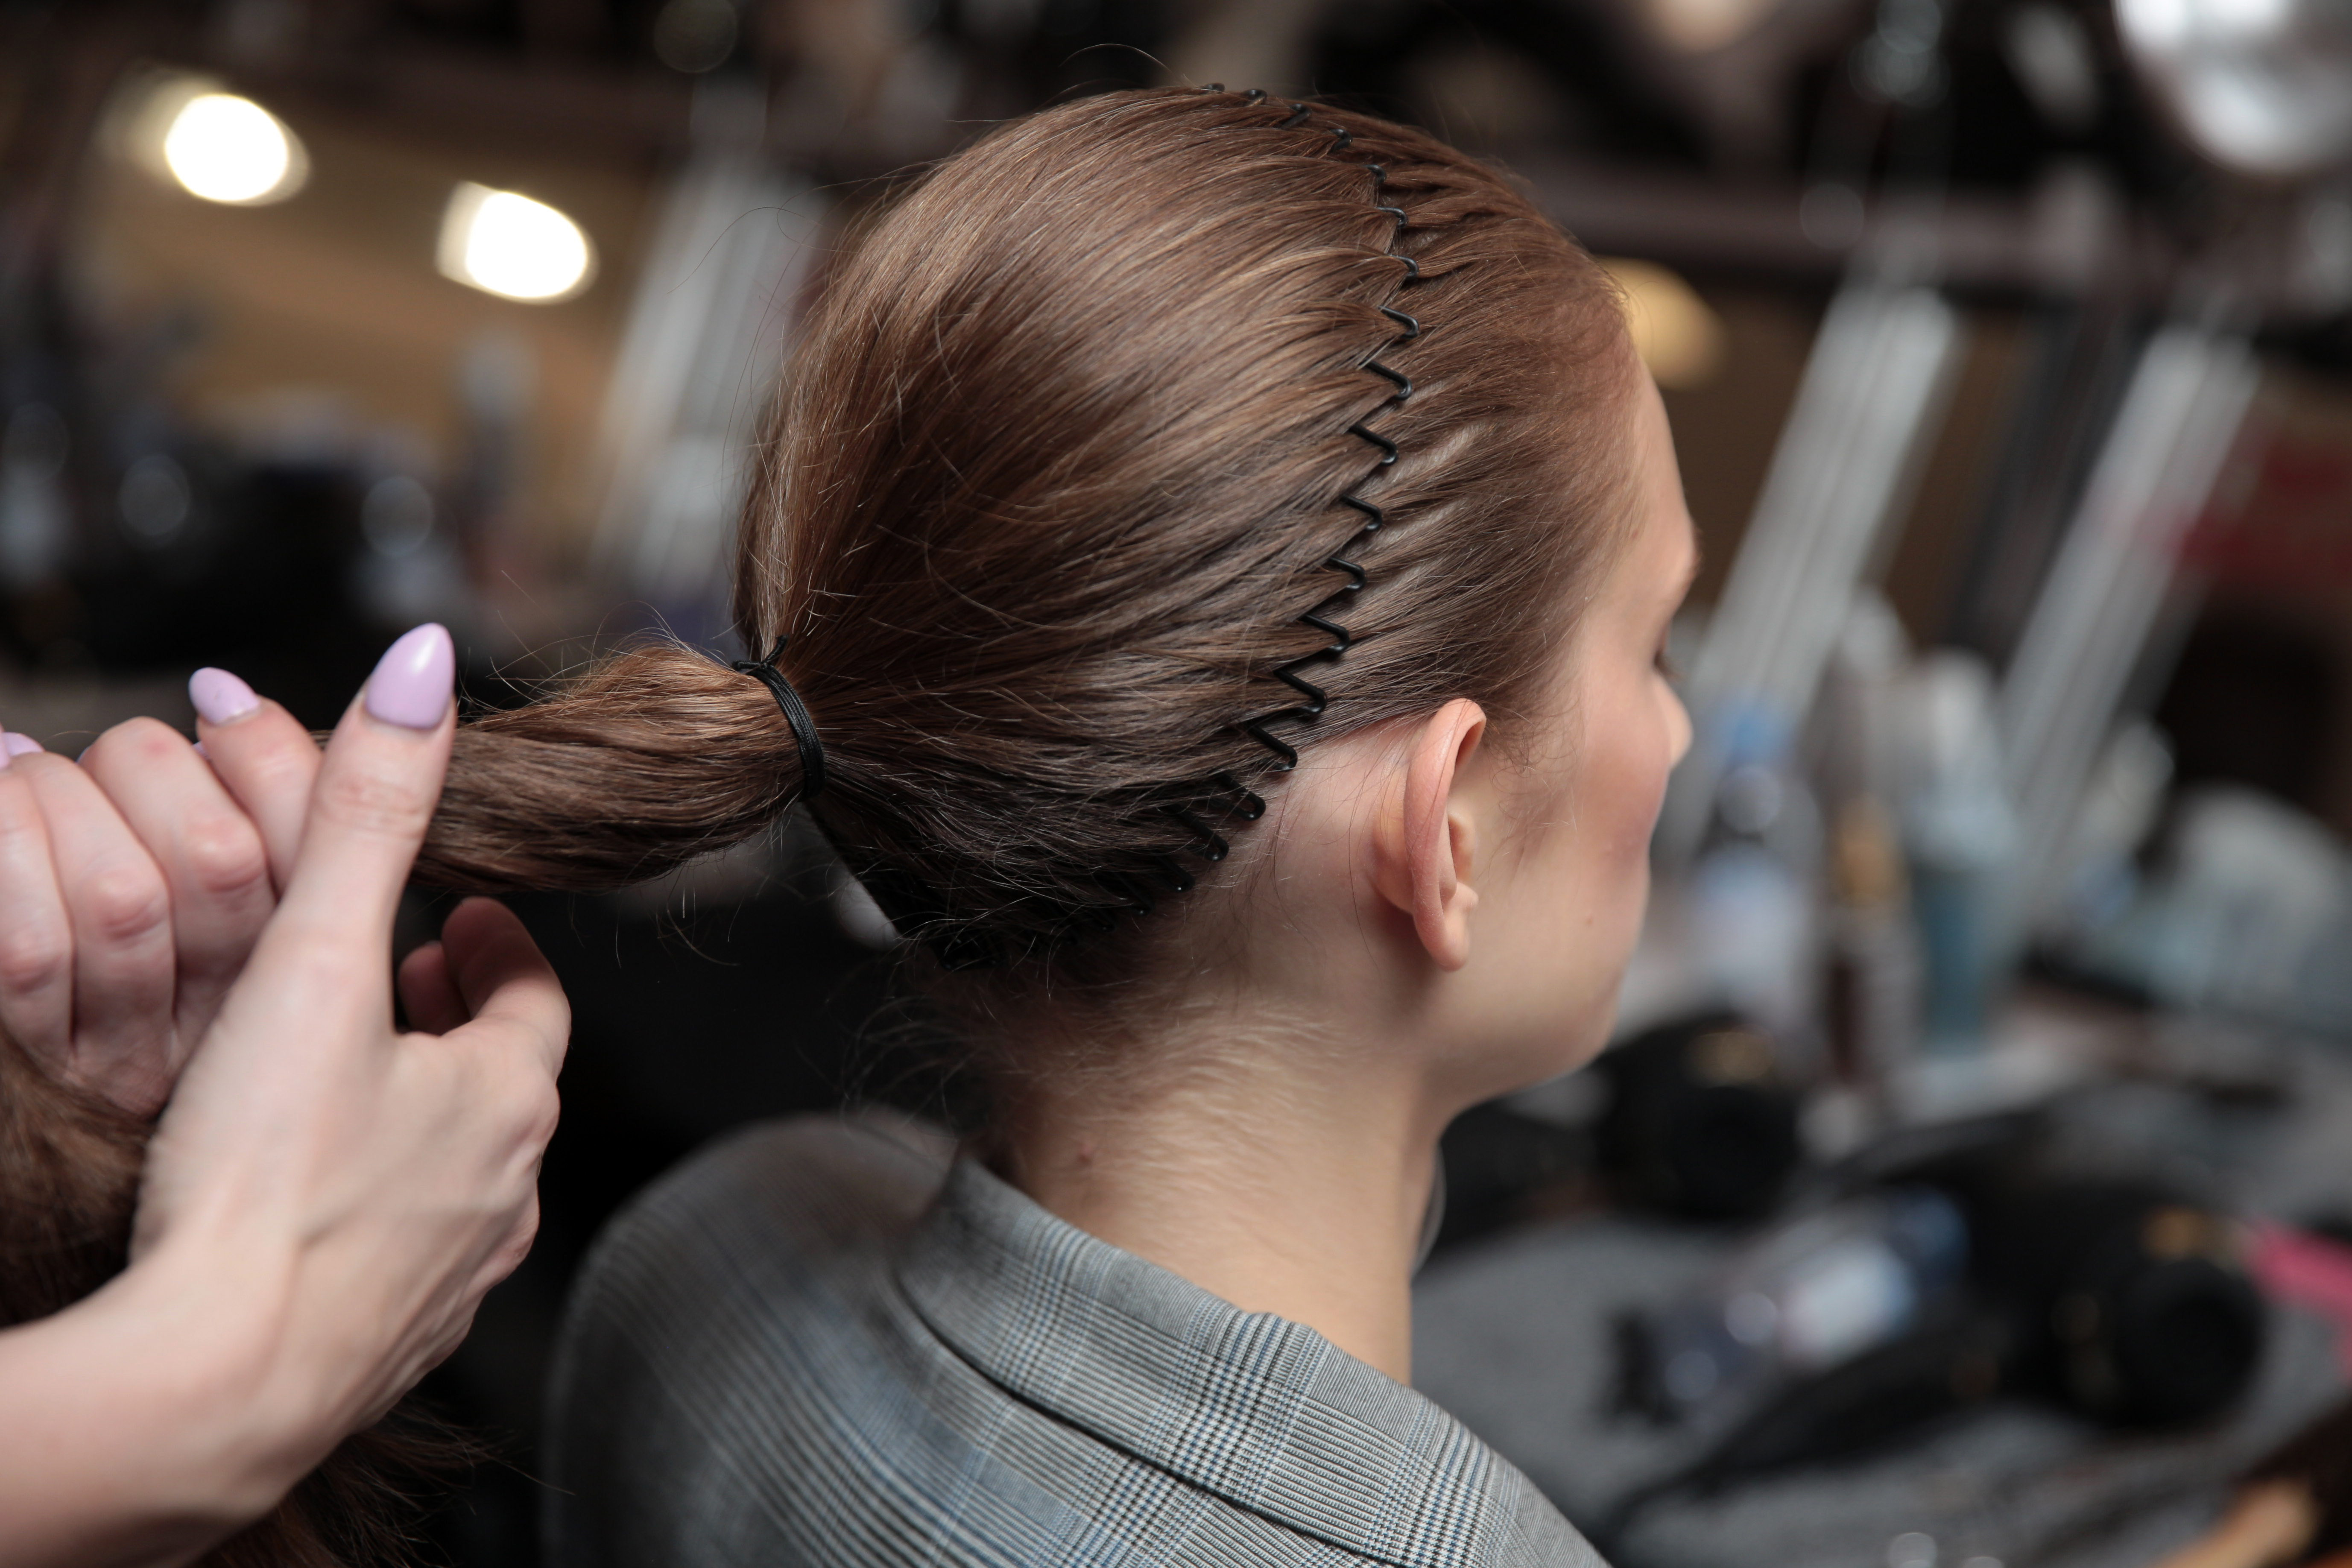 Model backstage, hair detailPrabal Gurung show, Backstage, Fall Winter 2018, New York Fashion Week, USA - 11 Feb 2018